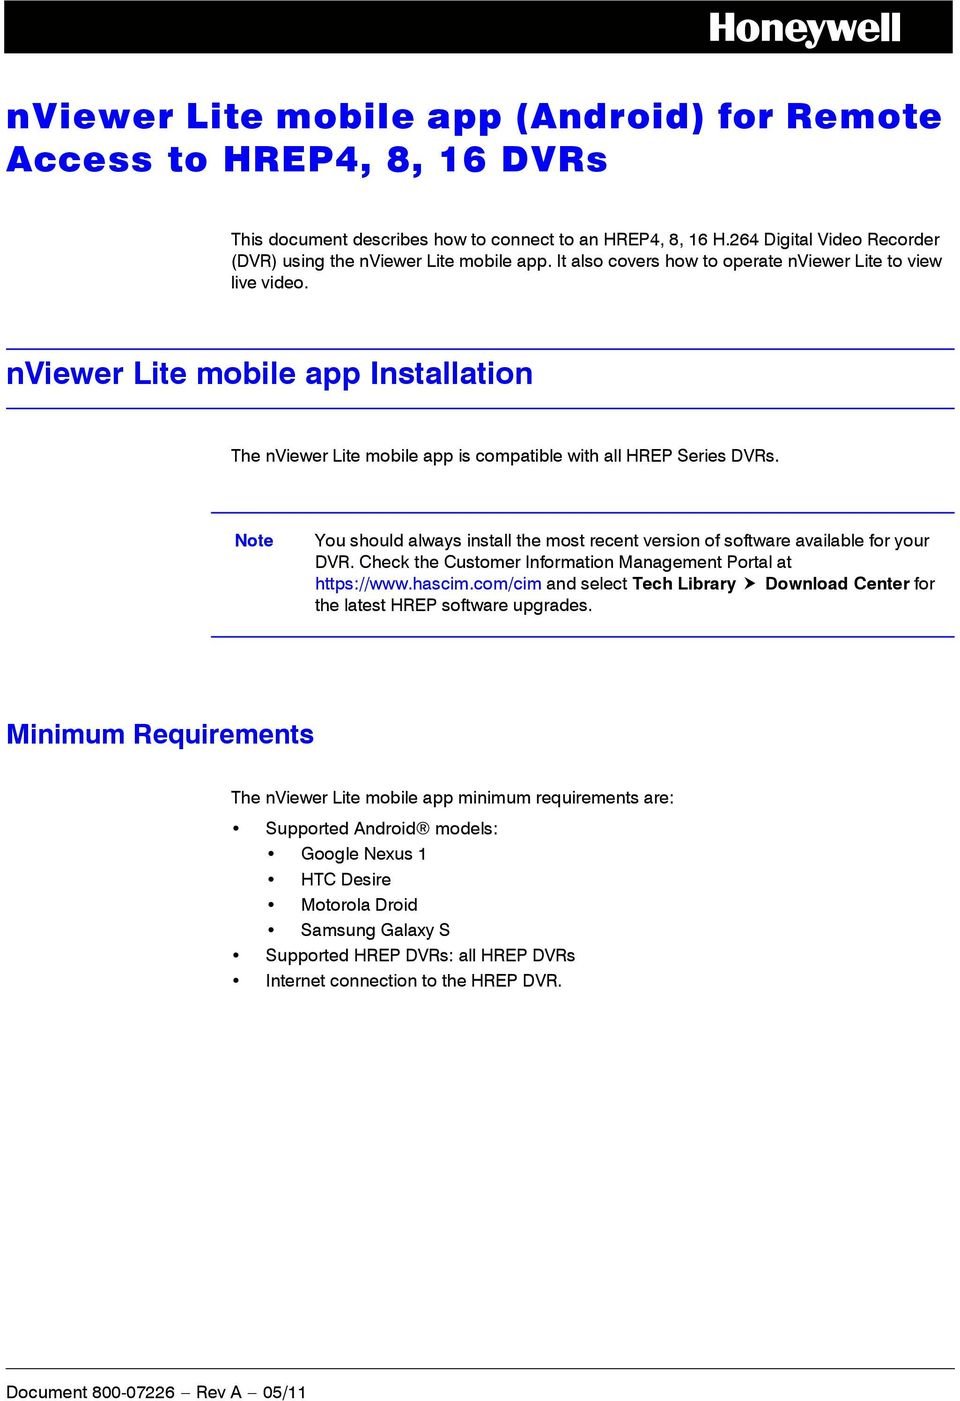 nviewer Lite mobile app (Android) for Remote Access to HREP4